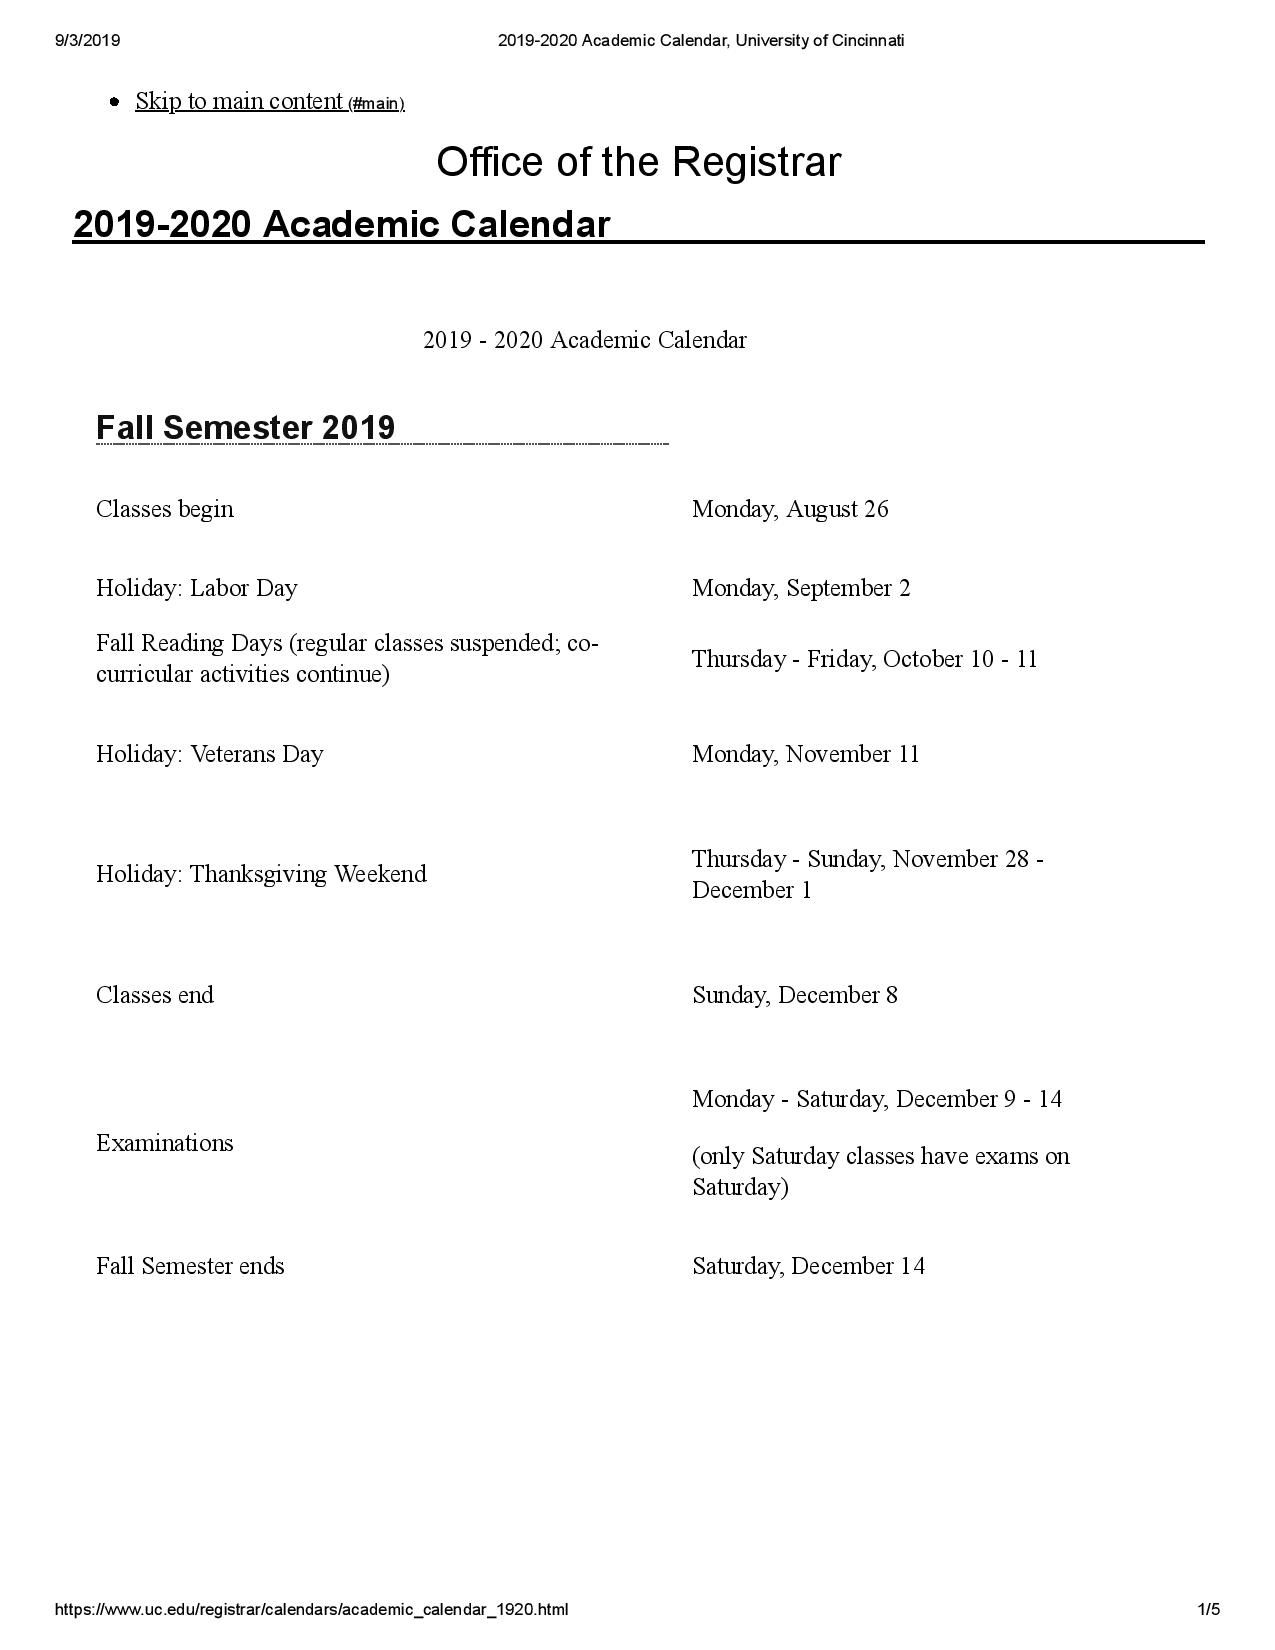 University Of Cincinnati Academic Calendar Images Academic